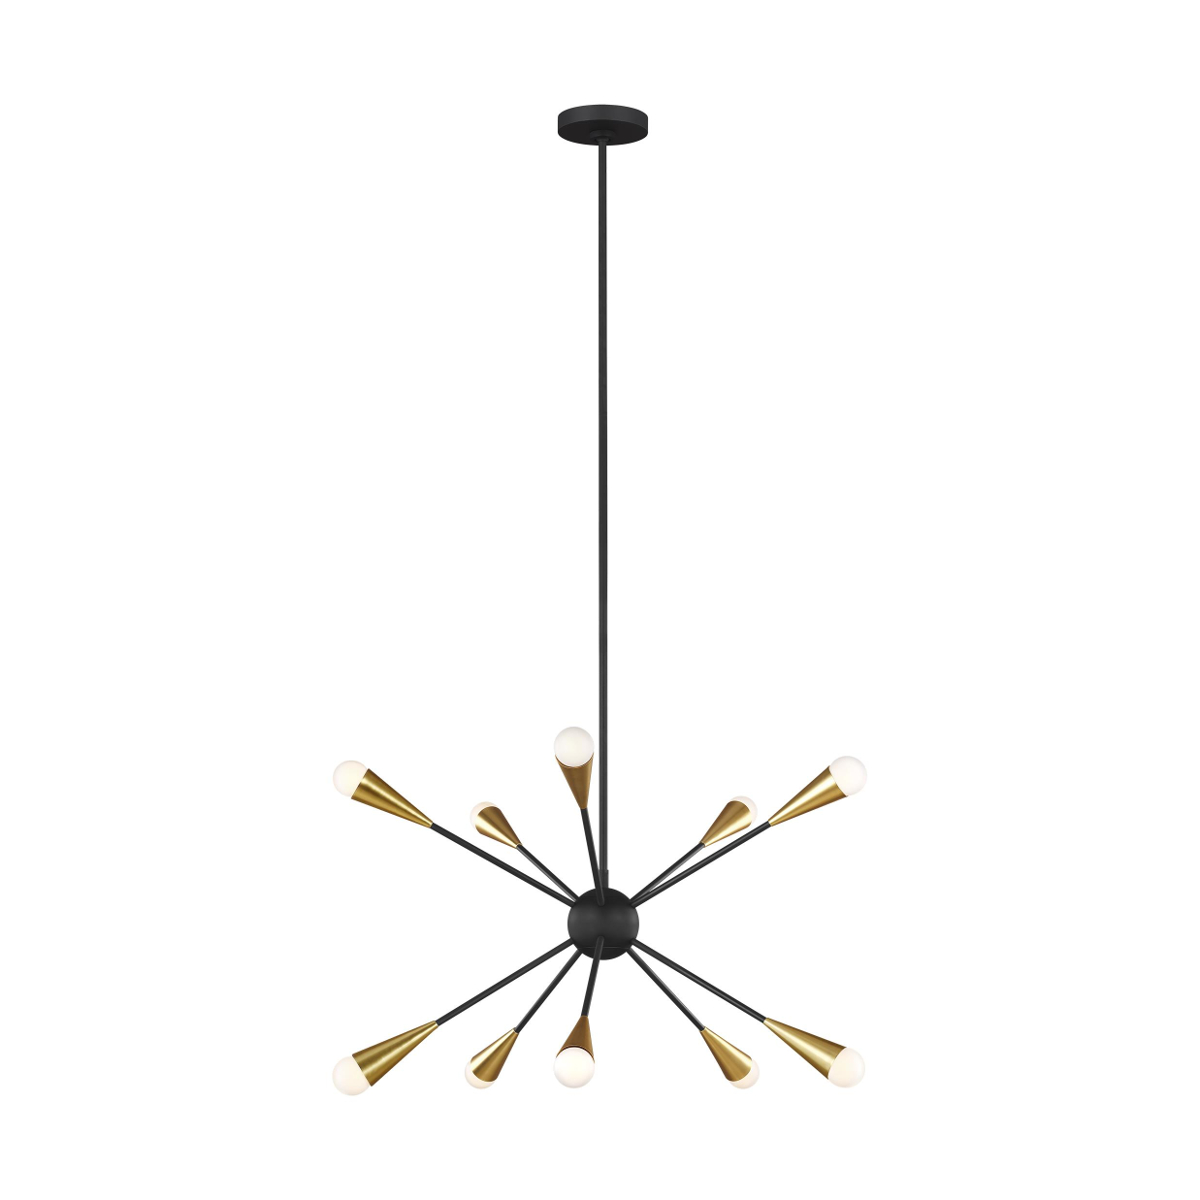 Sputnik Style 10 Light Pendant with Black inner ball and arms with burnished brass lampholders